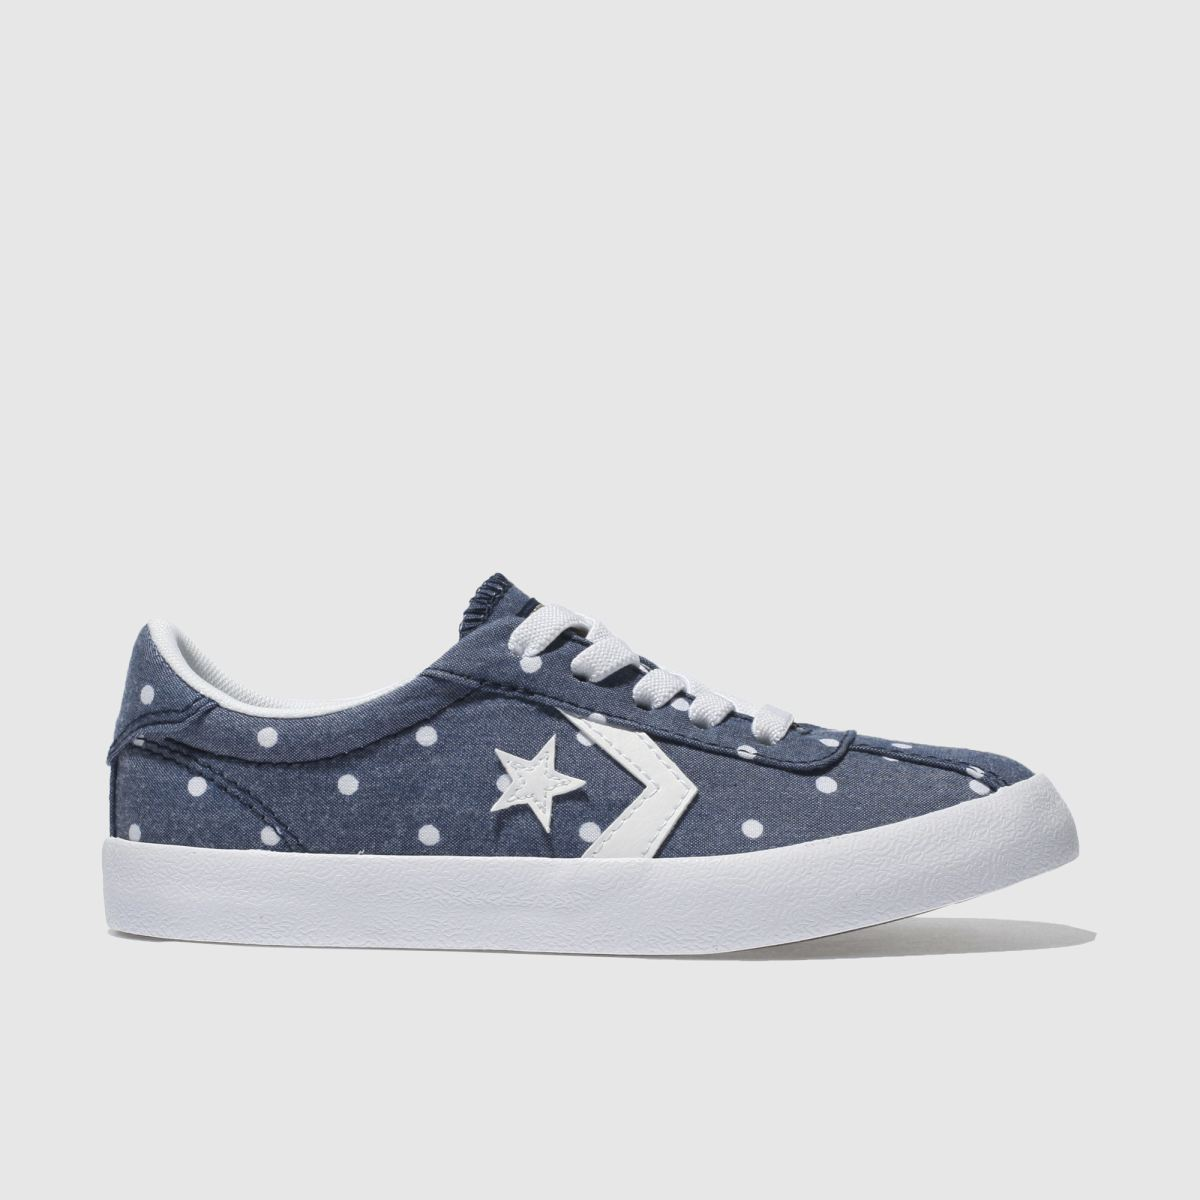 Converse Navy & White Breakpoint Ox Girls Junior Trainers